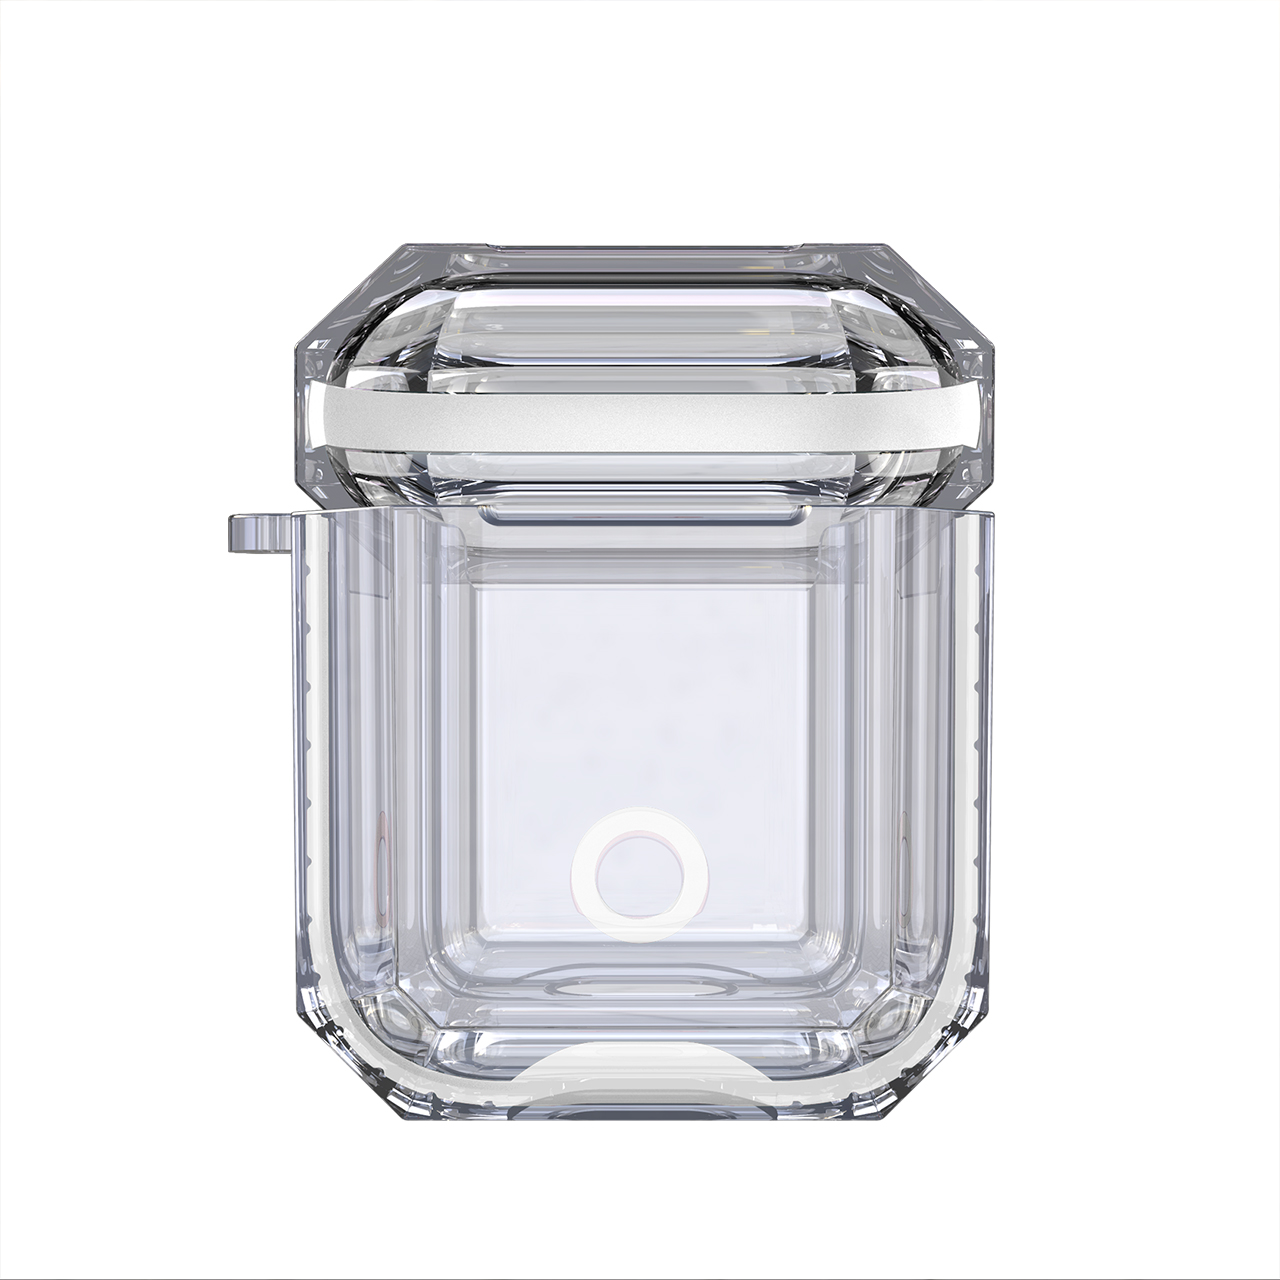 OTTWN Crystal Earphone Silicone Case for <font><b>Apple</b></font> <font><b>Airpods</b></font> 2 1 Soft Transparent Wireless Bluetooth Headset Charging Storage Box image